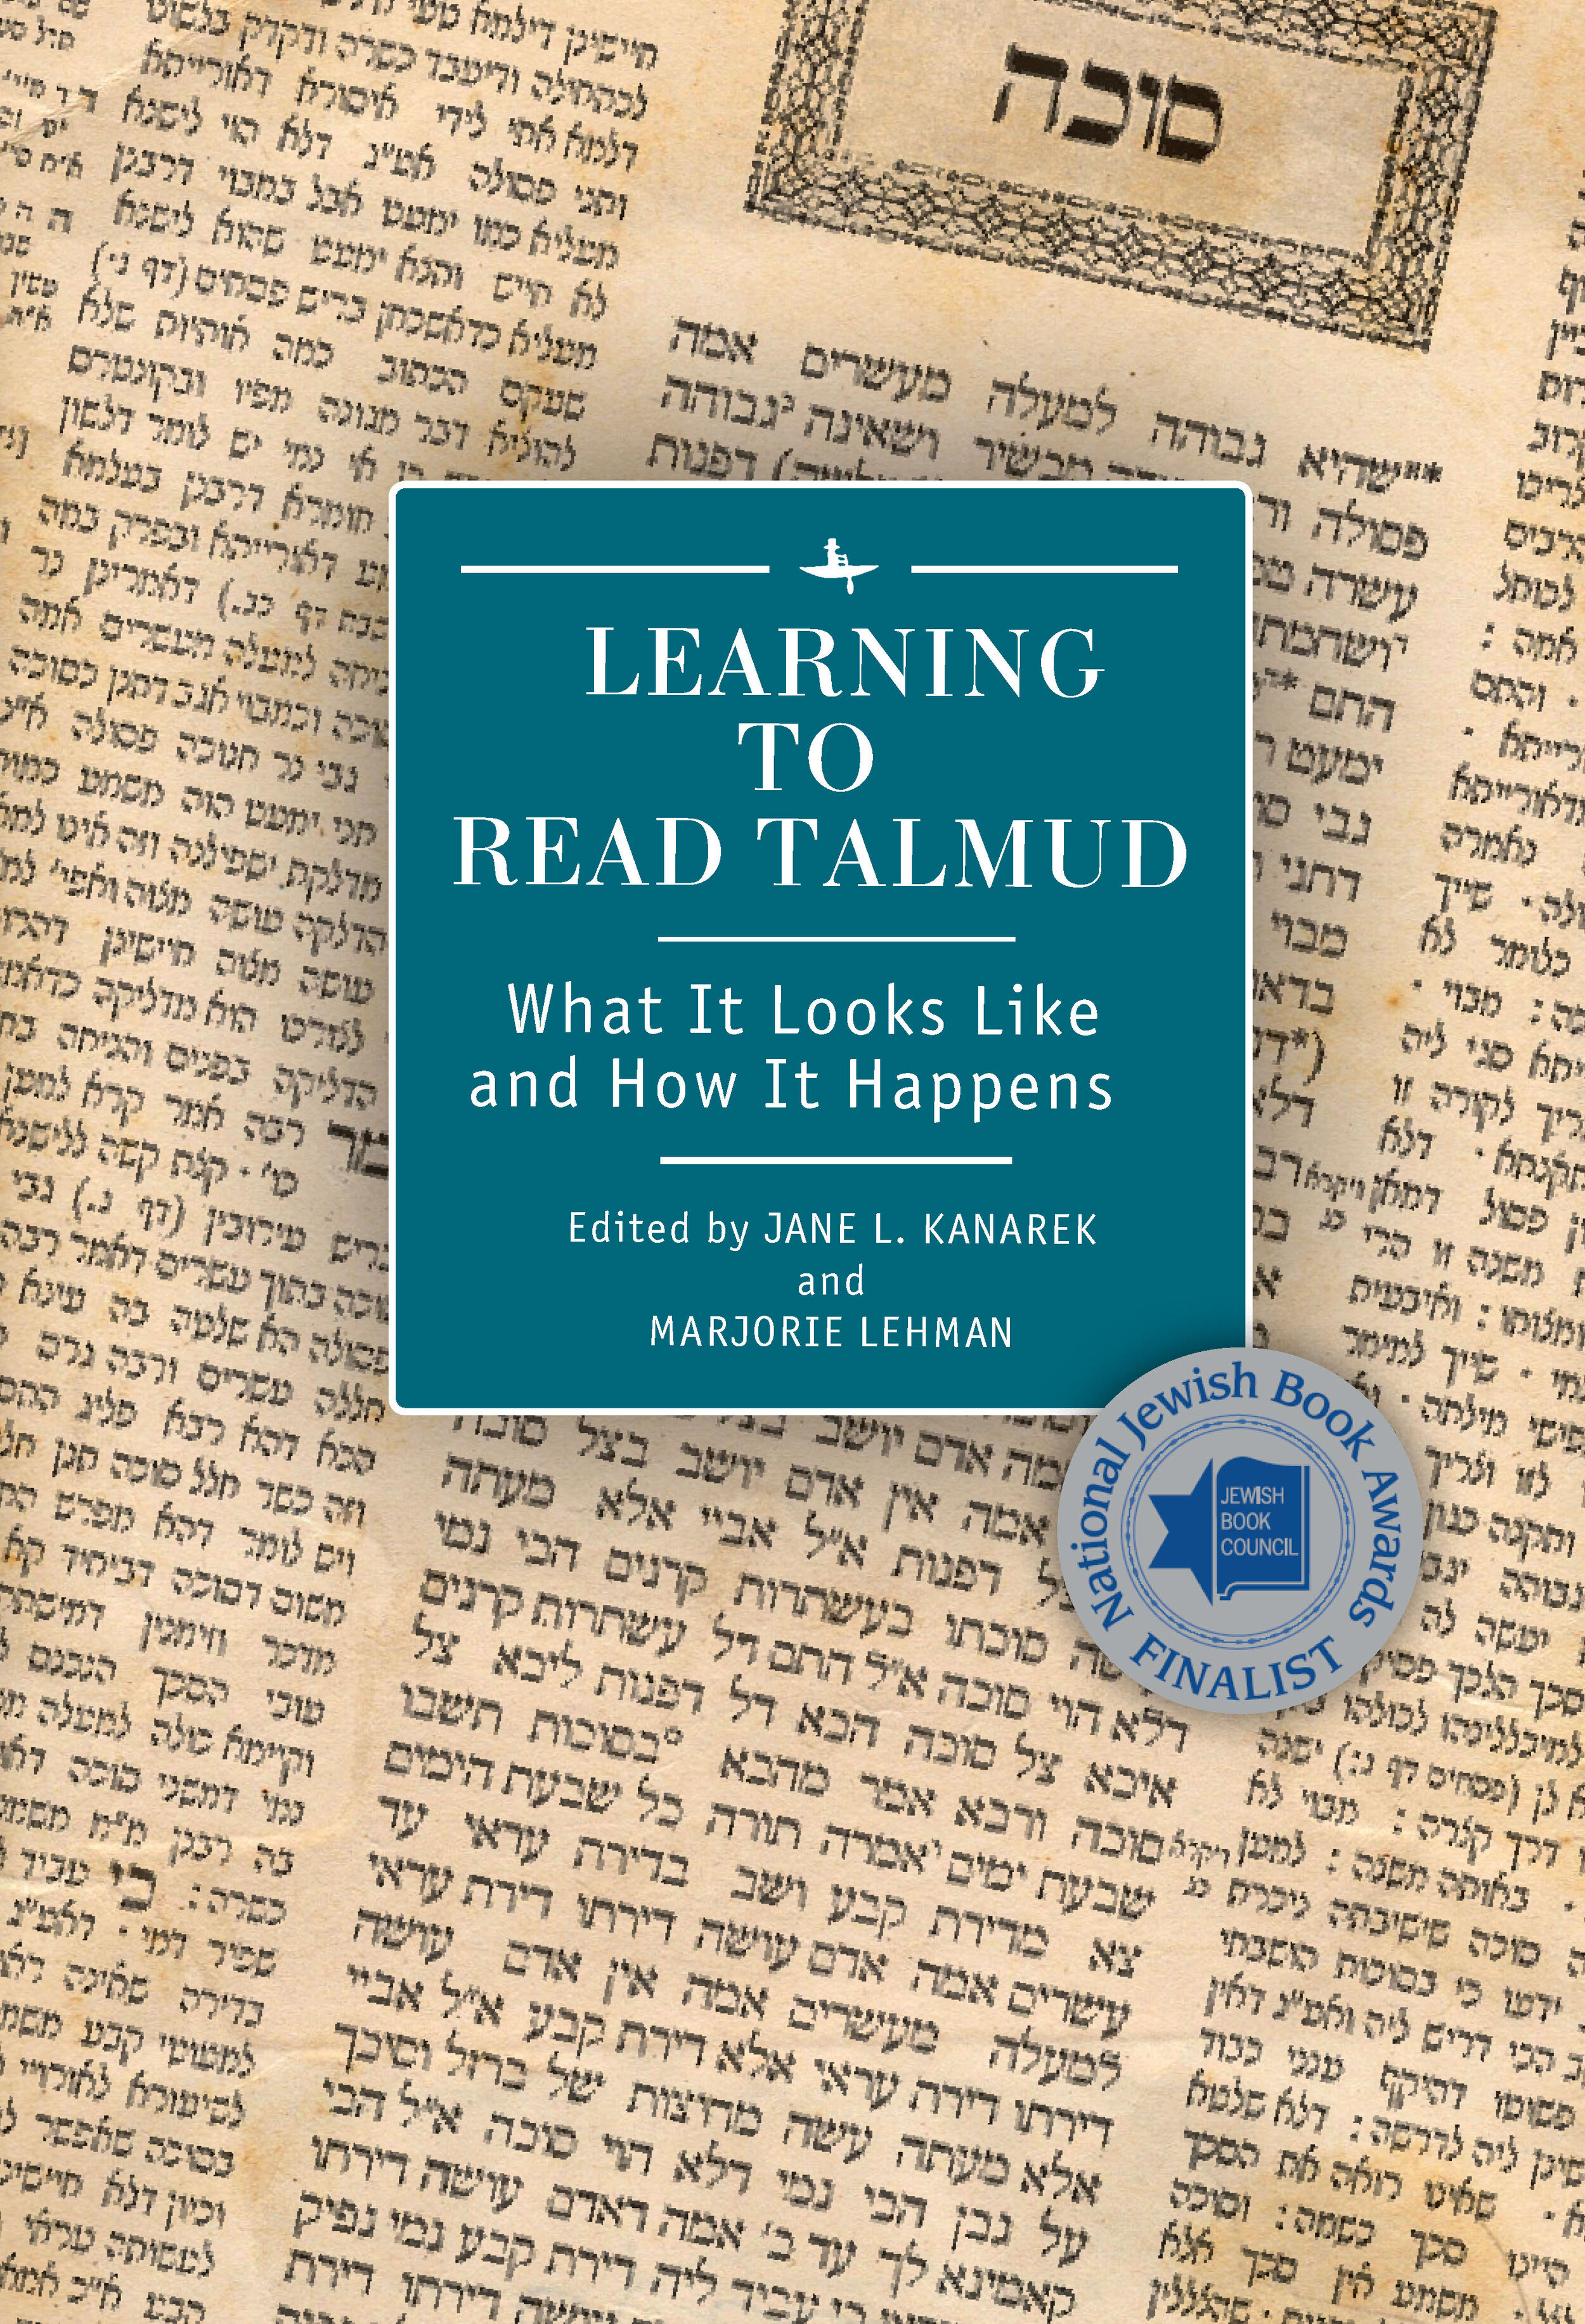 Learning to Read Talmud: What It Looks Like and How It Happens   Edited by  Jane L. Kanarek and Marjorie Lehman   Read on OAPEN     Purchase book